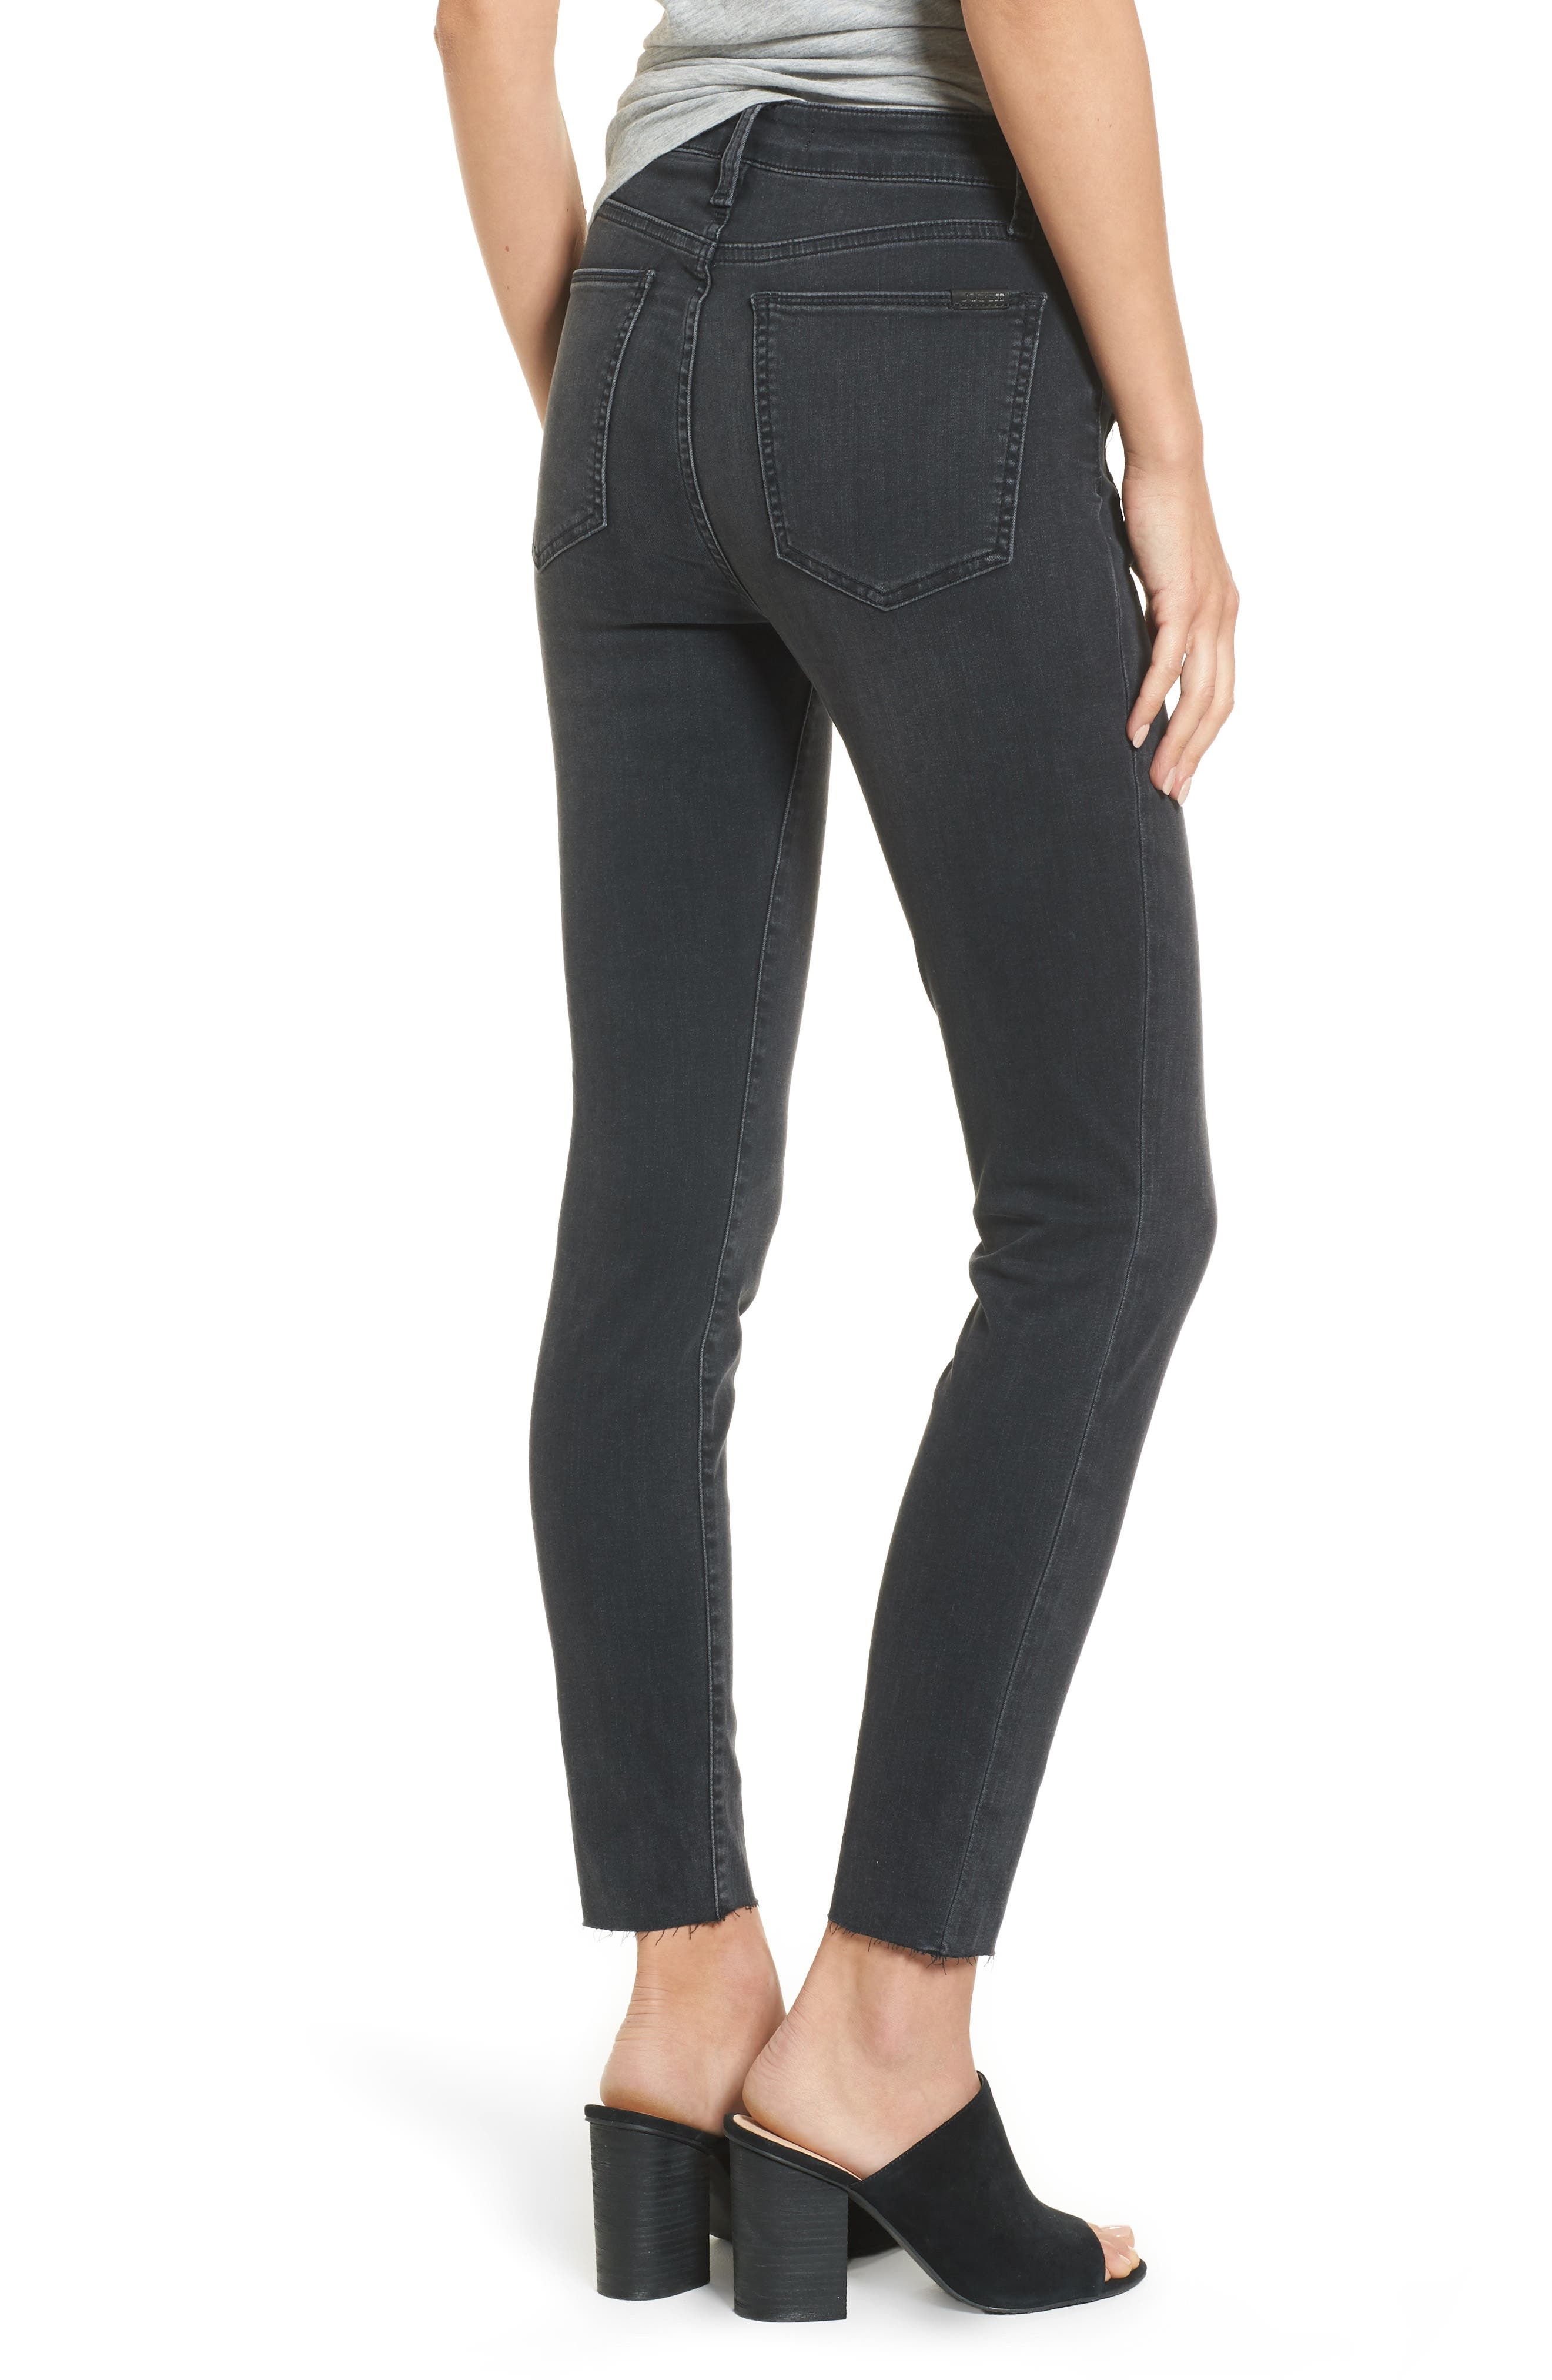 Charlie High Waist Ankle Skinny Jeans,                             Alternate thumbnail 2, color,                             003